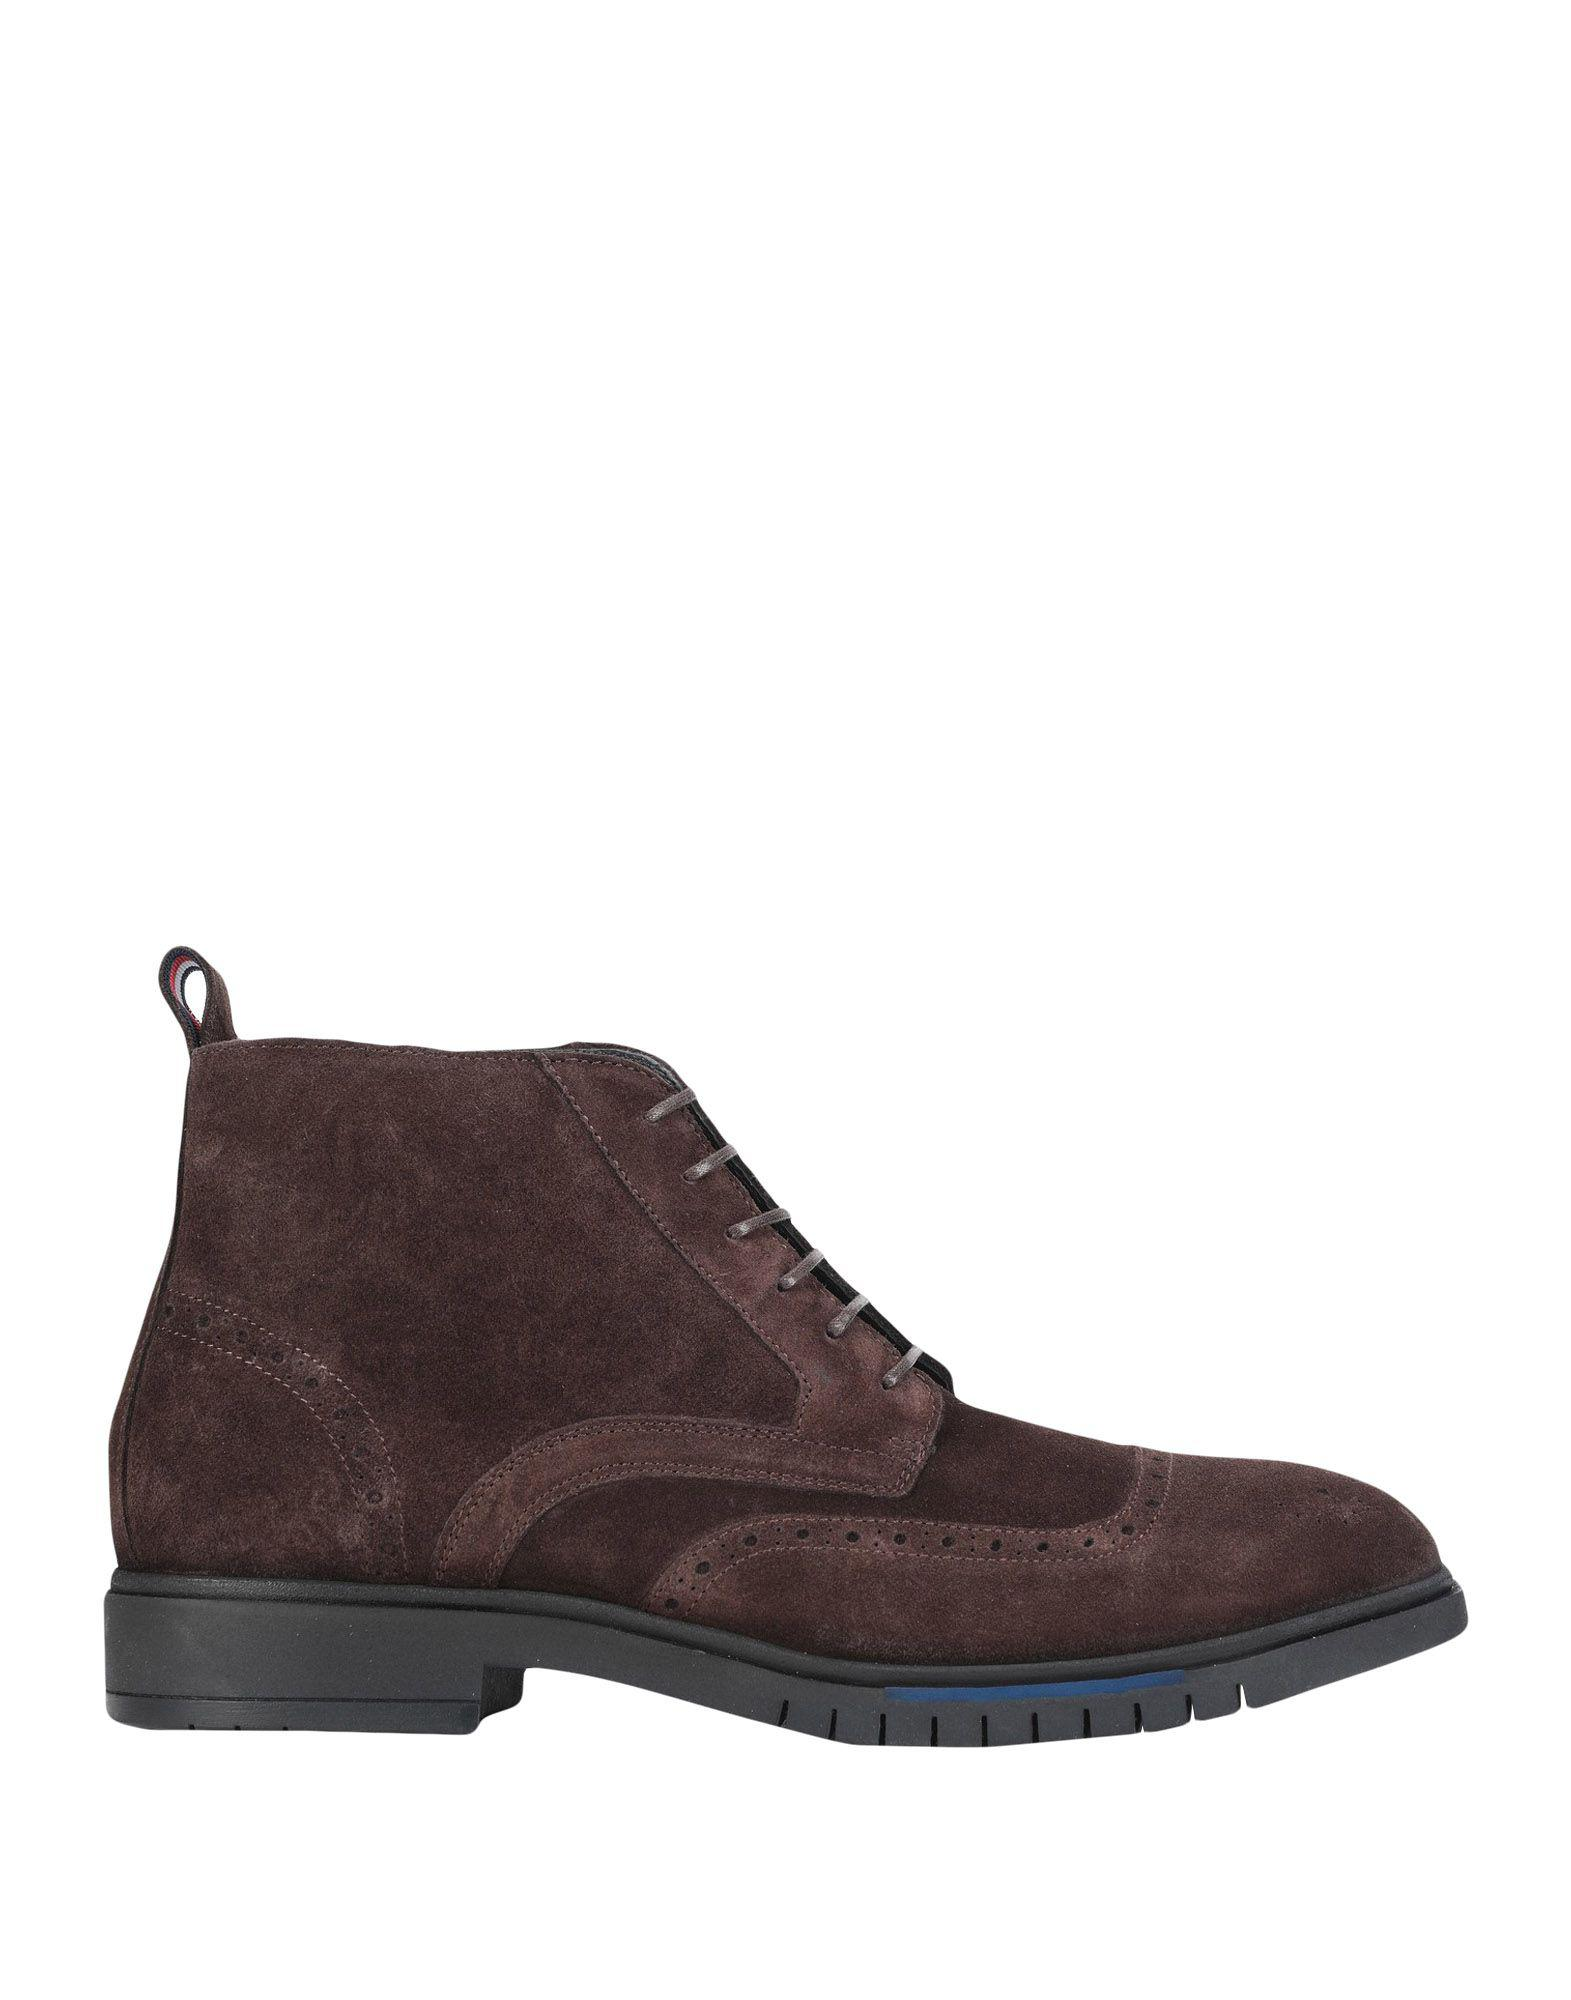 58baca4aa9468 Lyst - Tommy Hilfiger Ankle Boots in Brown for Men